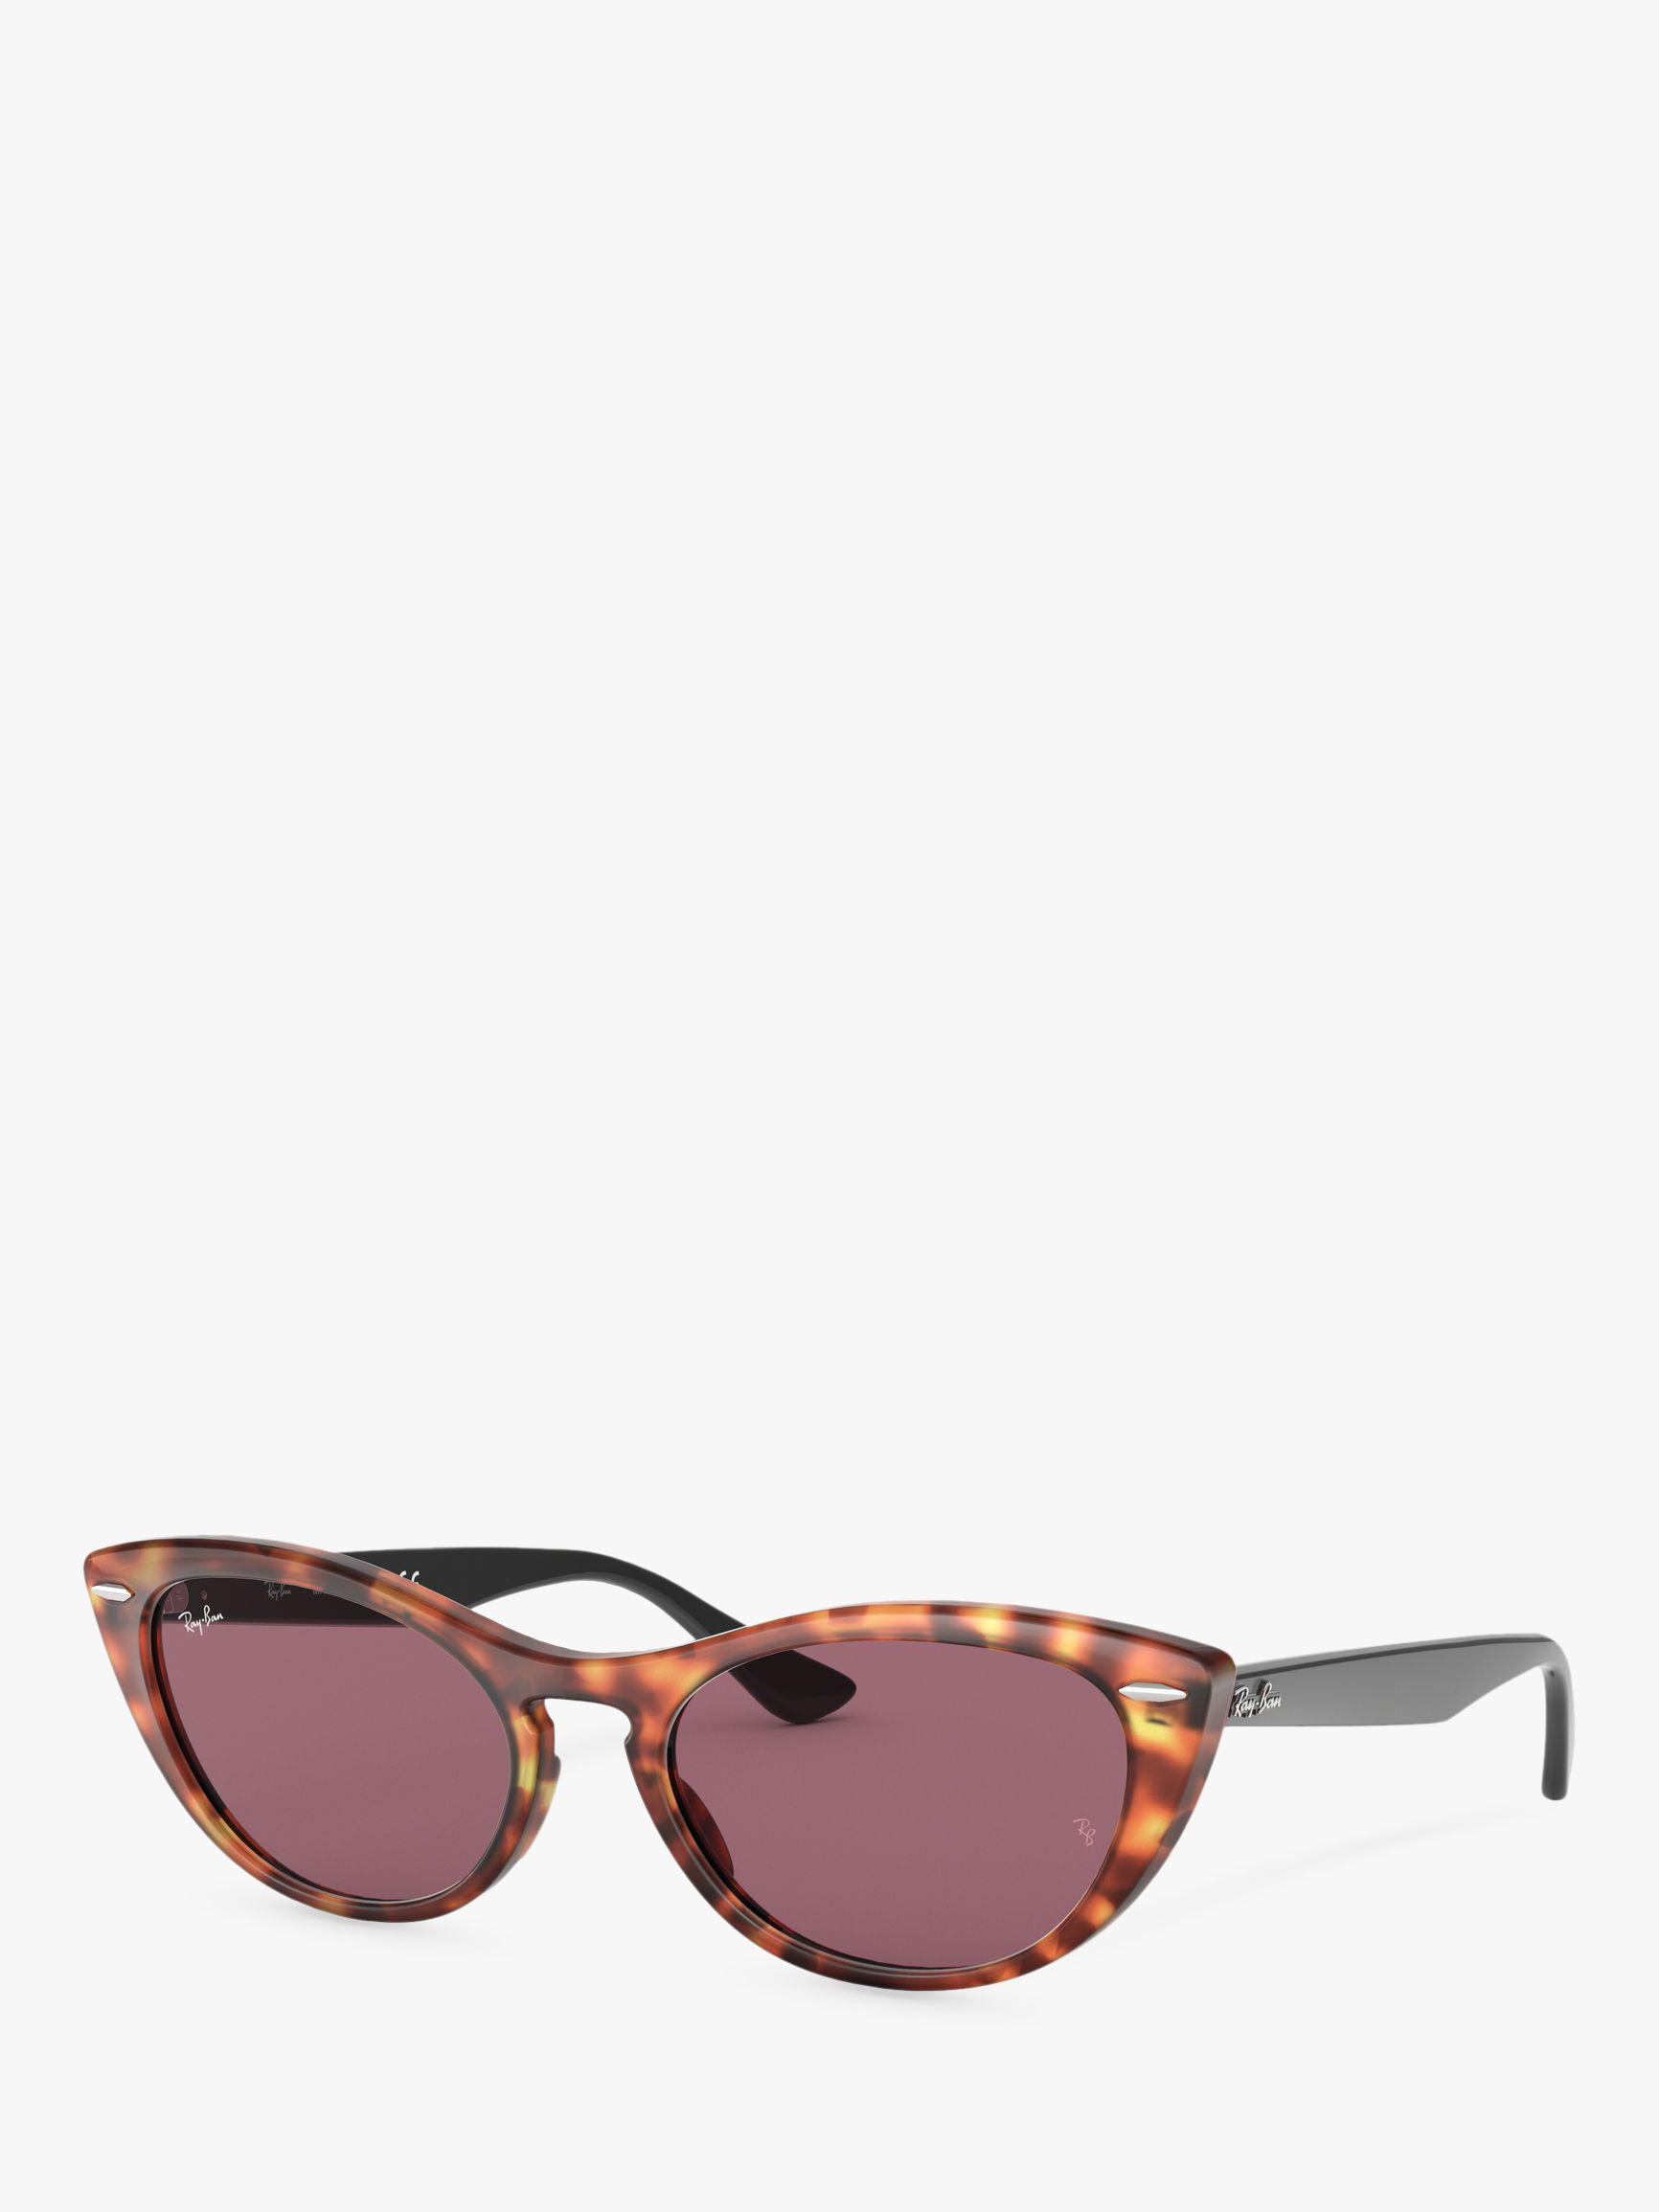 ff09bf7cc40 Ray-Ban. Rb4314n Women s Cat s Eye Sunglasses. £154 From John Lewis and  Partners